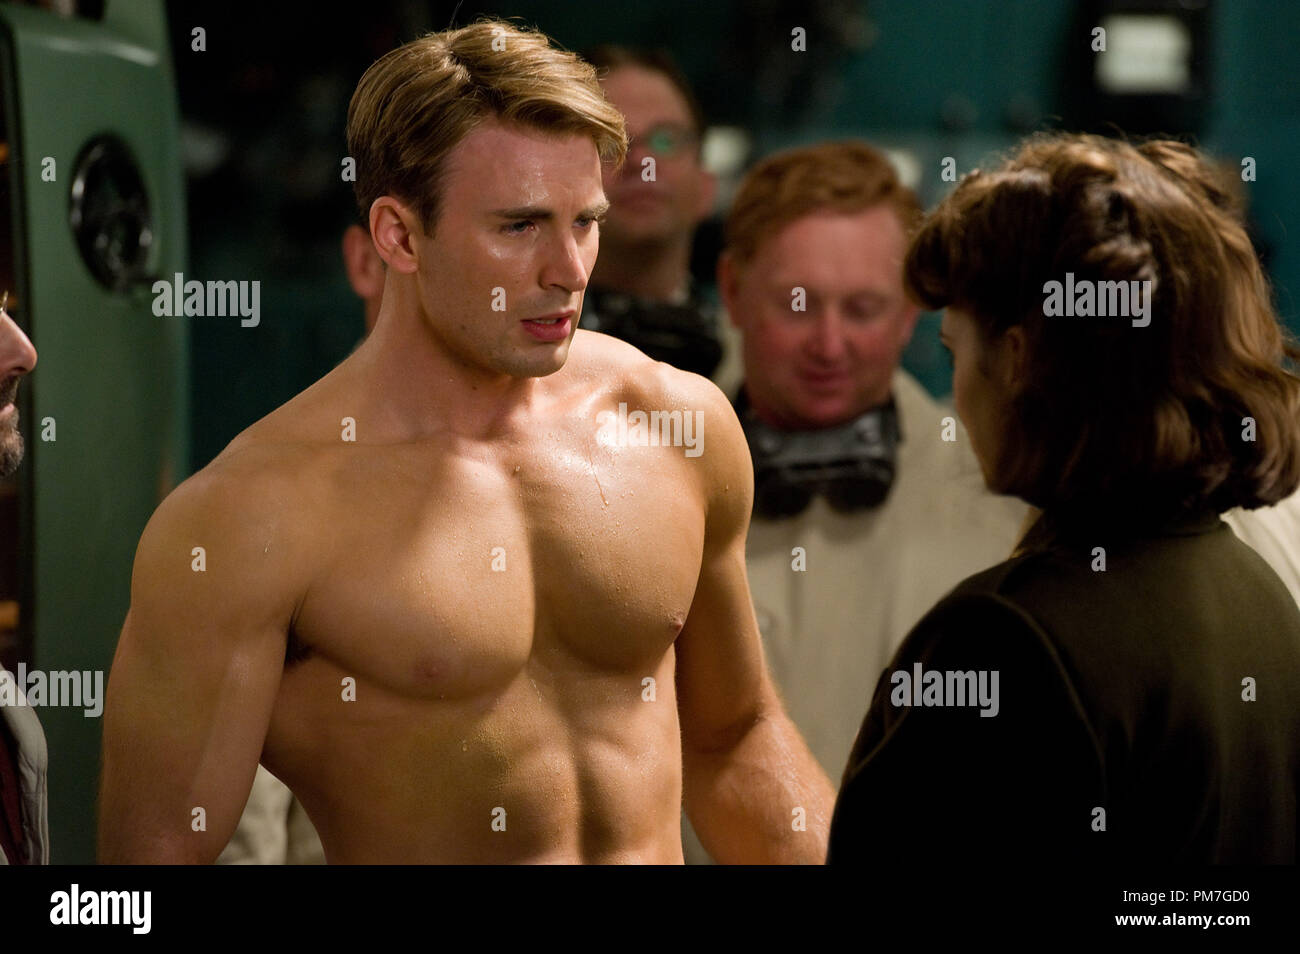 Left To Right Chris Evans Plays Steve Rogers And Hayley Atwell Plays Peggy Carter In Captain America The First Avenger From Paramount Pictures And Marvel Entertainment Stock Photo Alamy